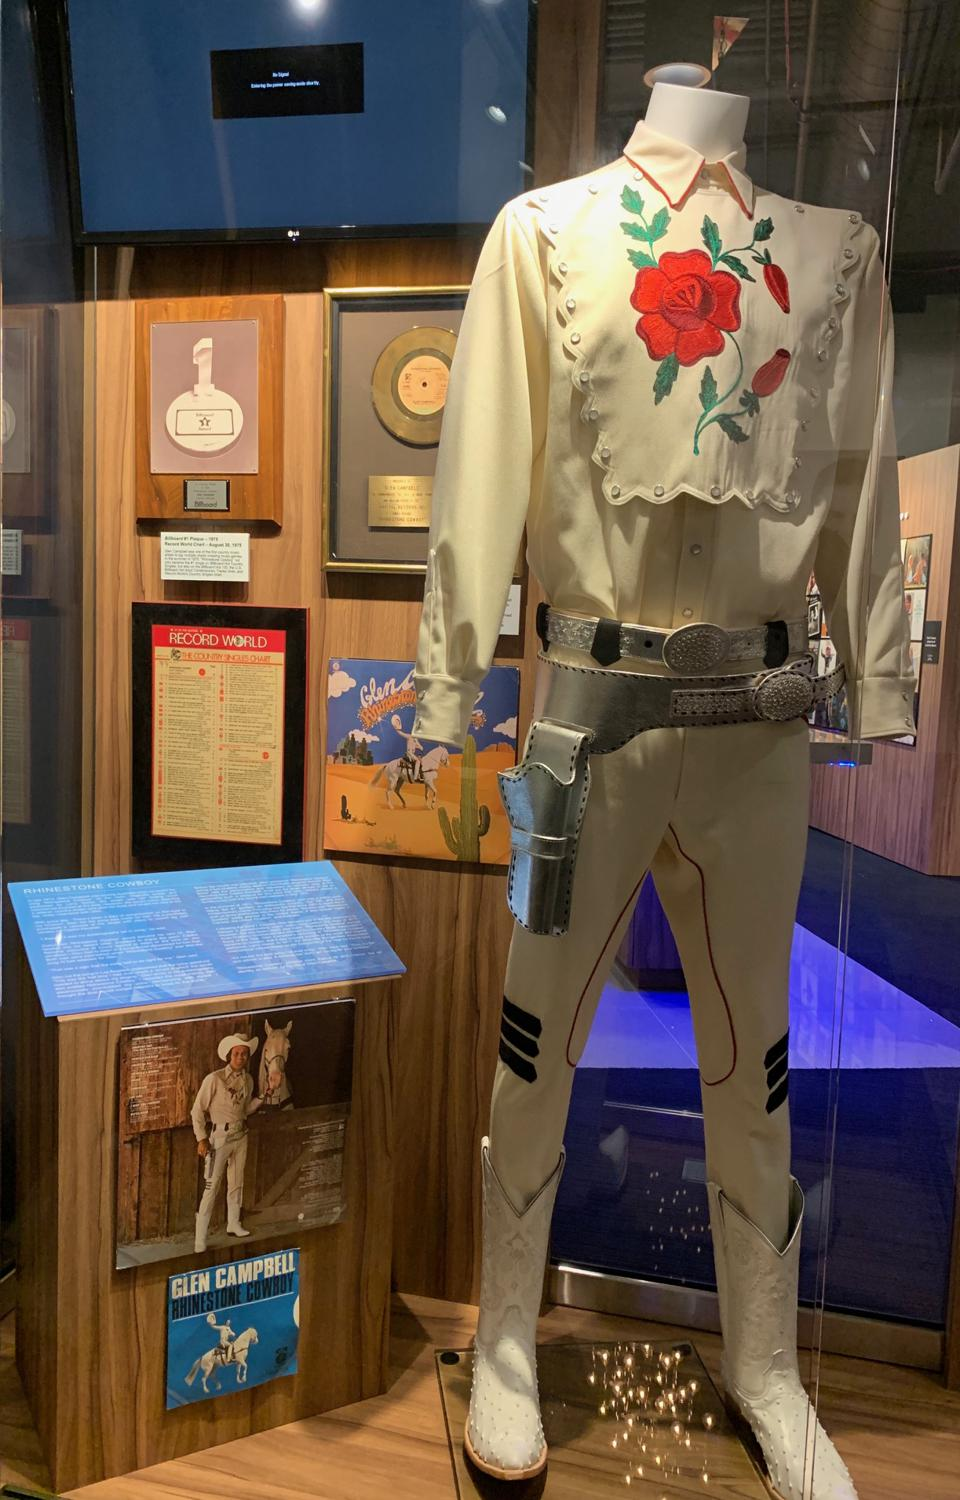 ″Rhinestone Cowboy″ suit on display at the Glen Campbell Museum in Nashville.